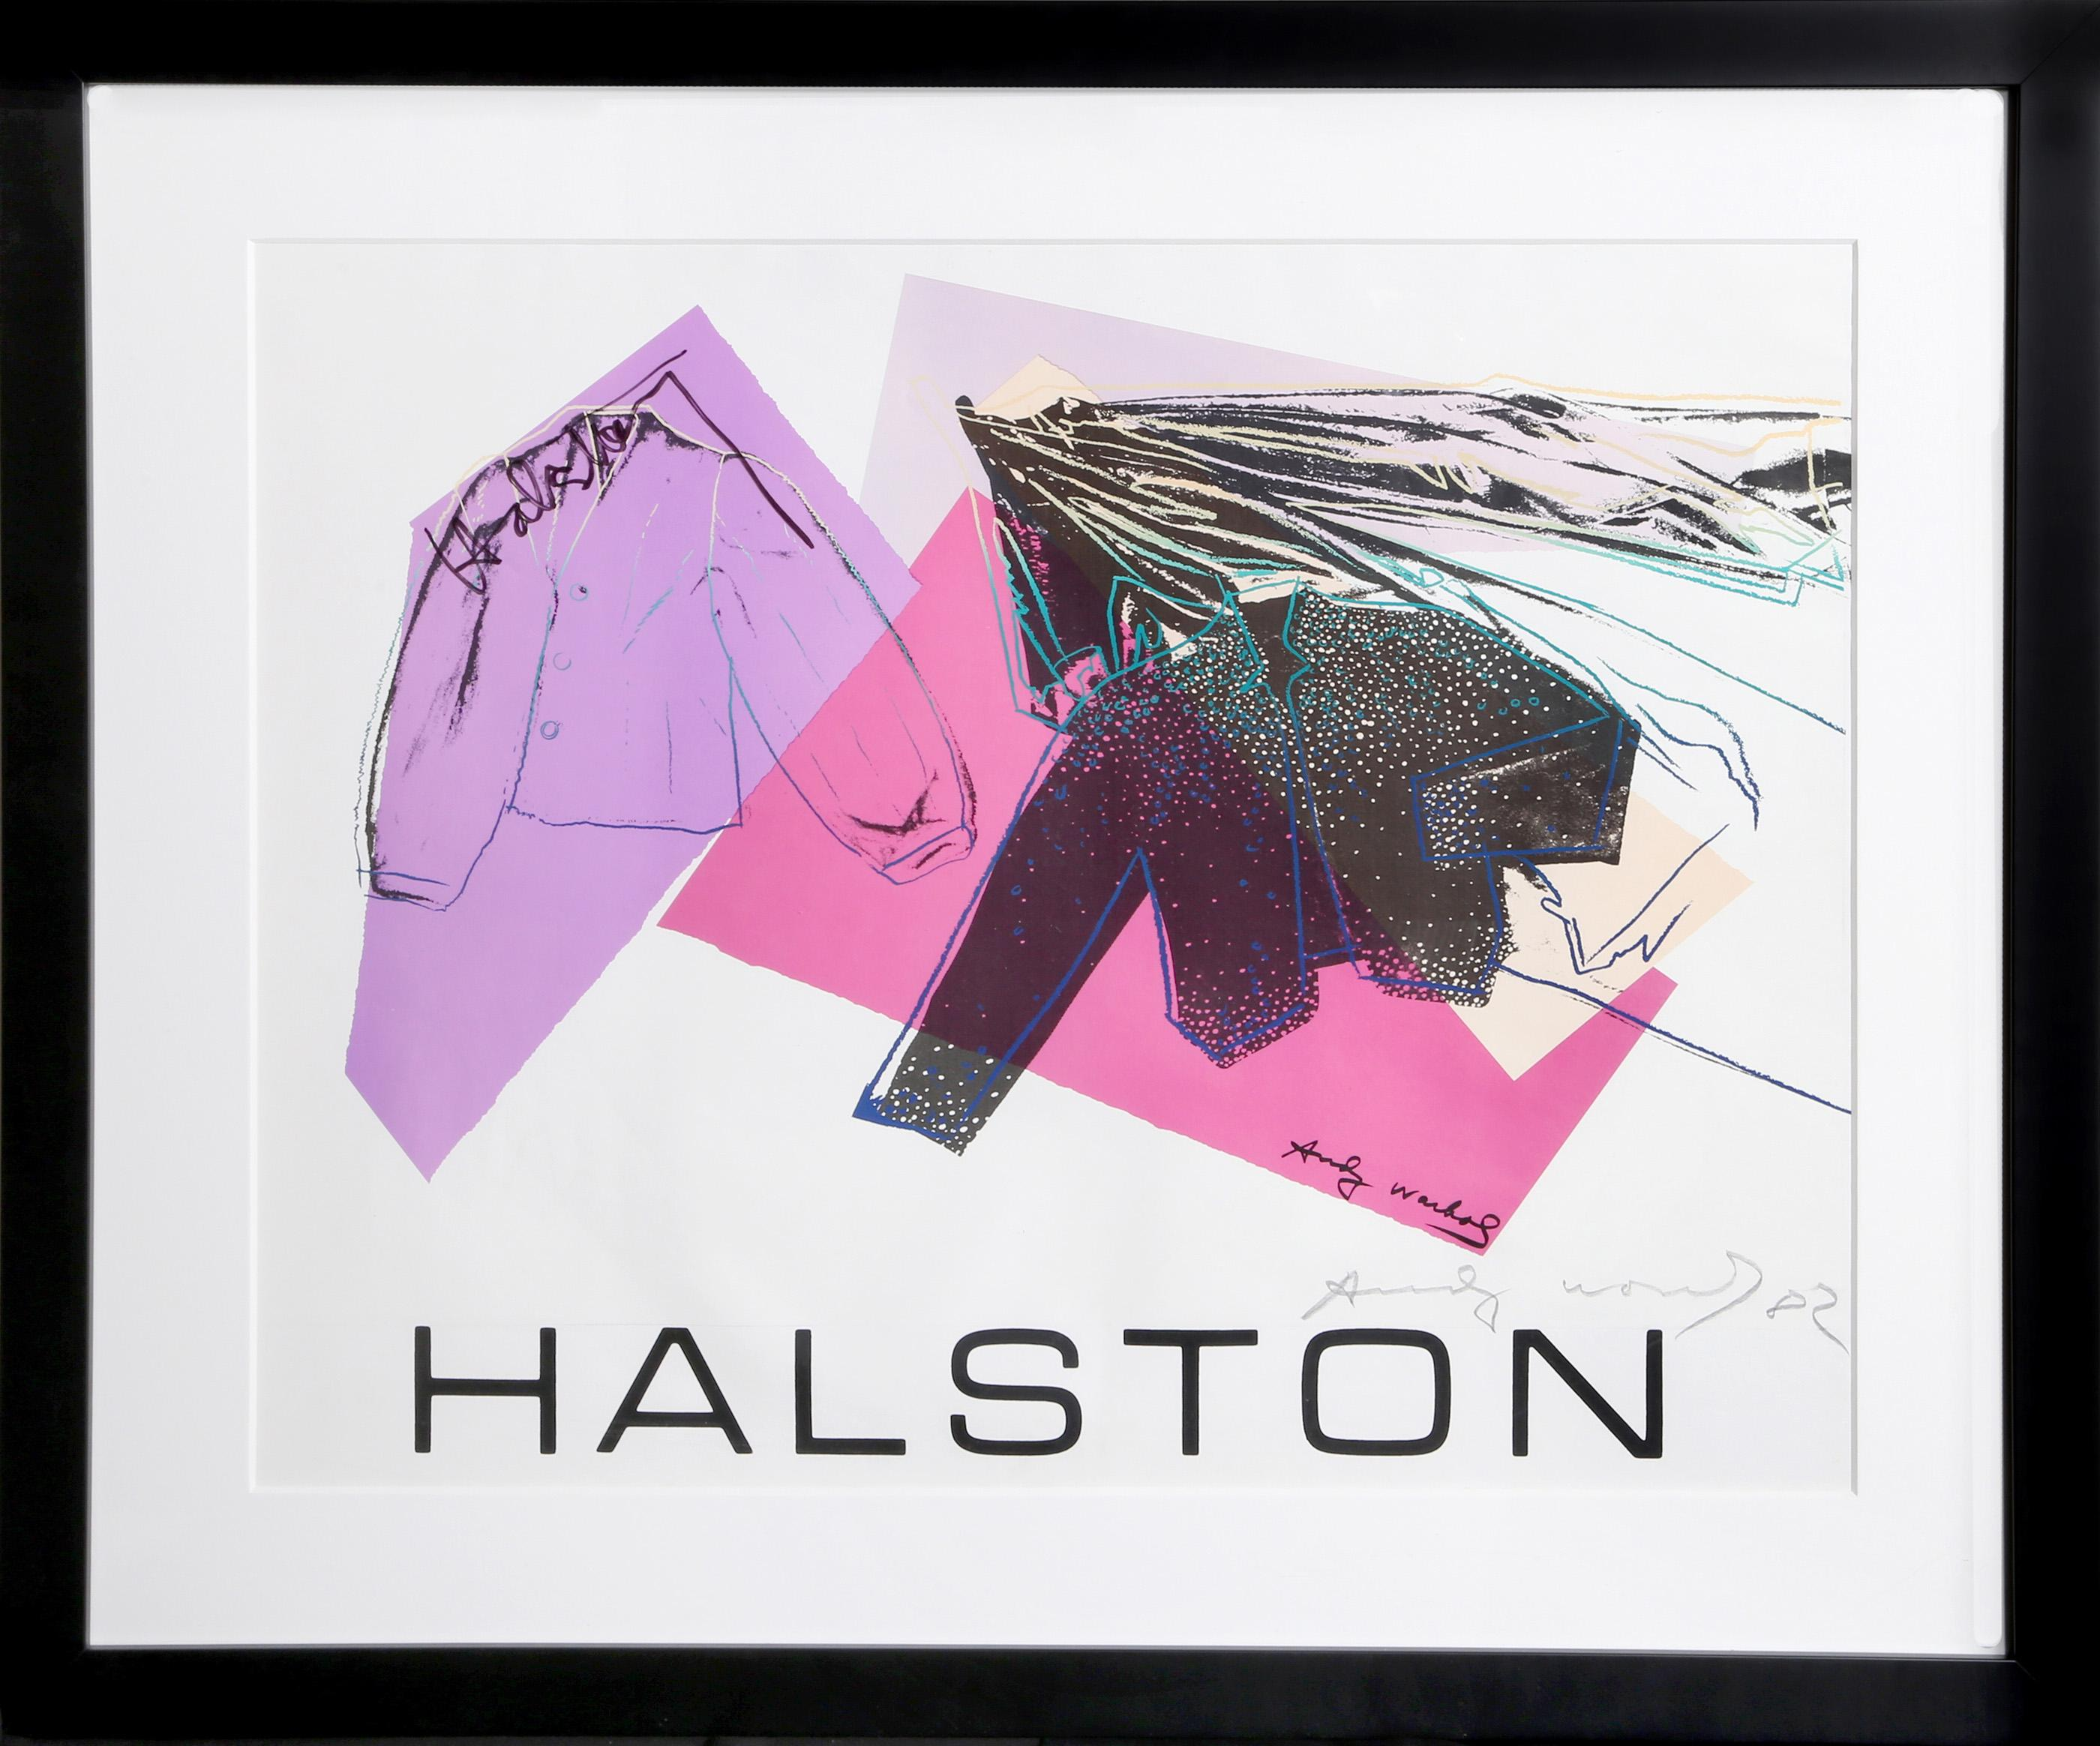 Andy Warhol, Halston Advertising Campaign: Women's Wear, Autographed and Signed Poster